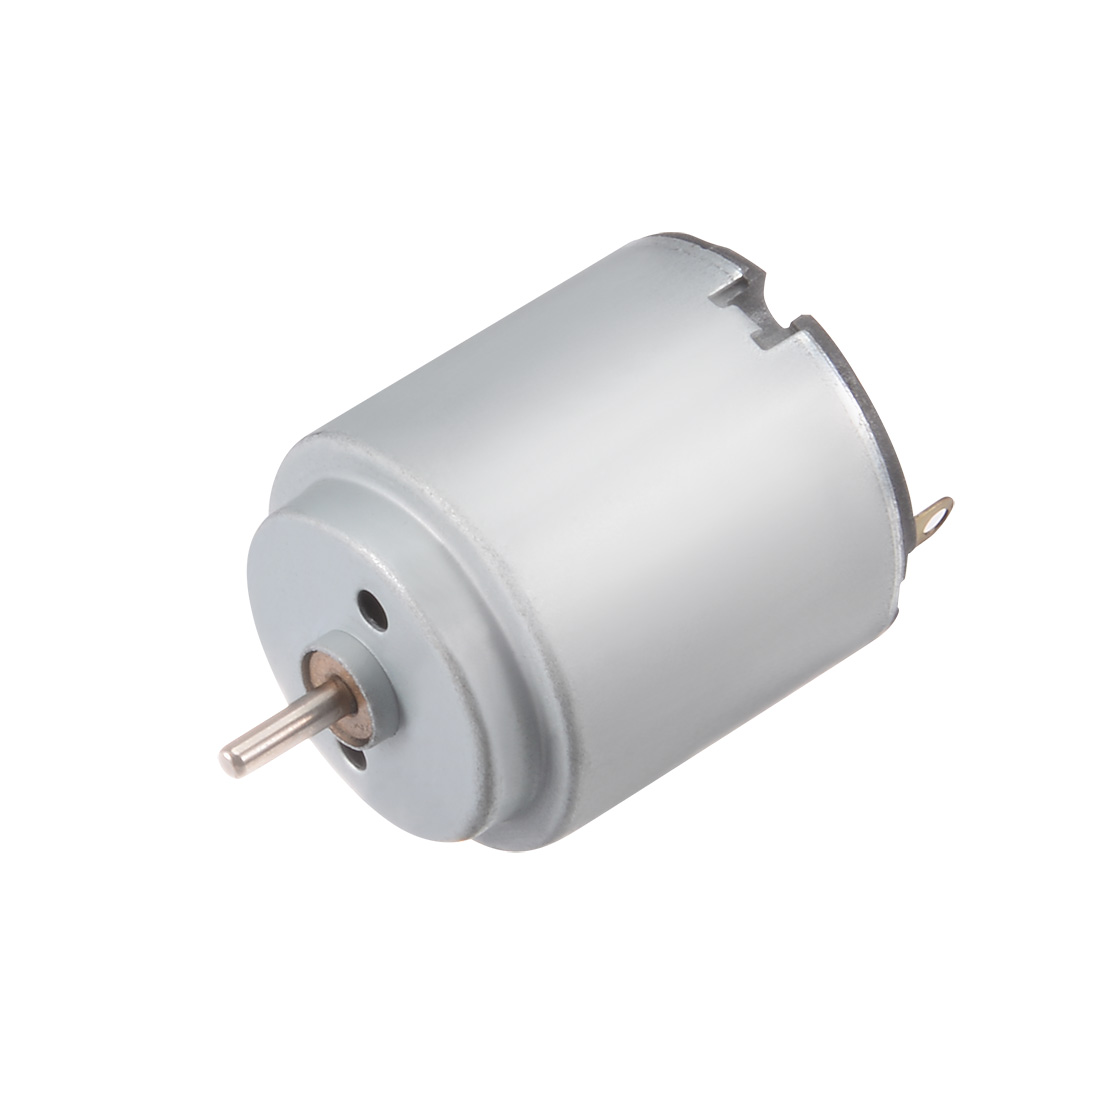 Small Motor DC 6V 5800RPM High Speed Motor for DIY Hobby Toy Cars